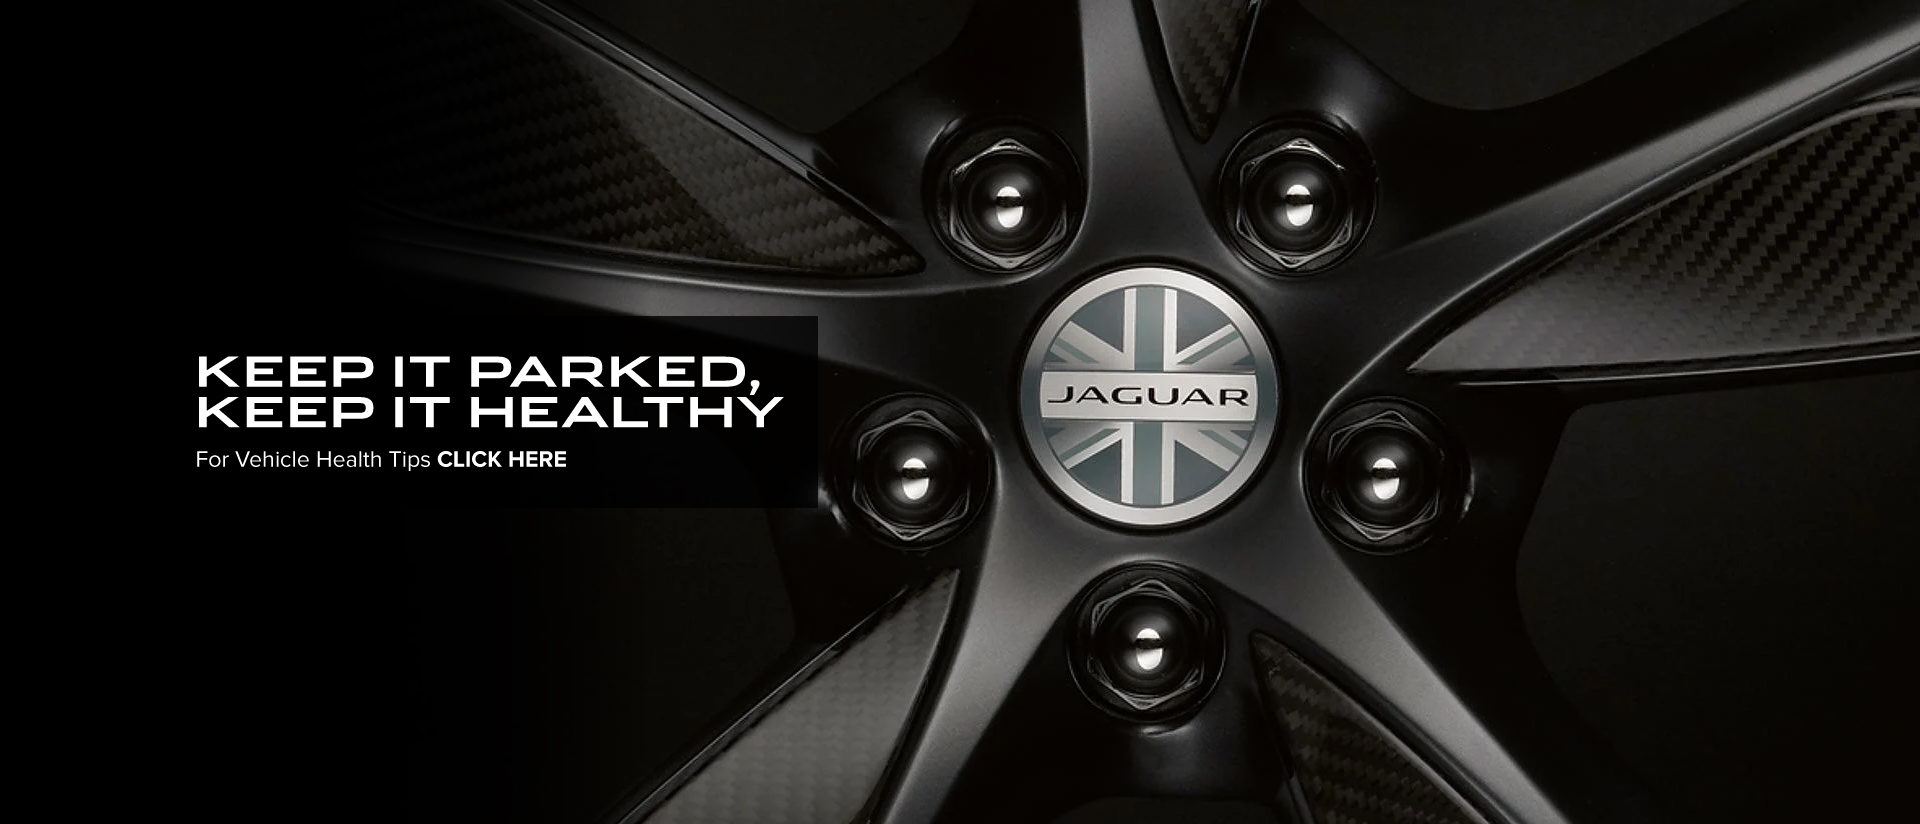 Jaguar Toronto Safe Healthy 01